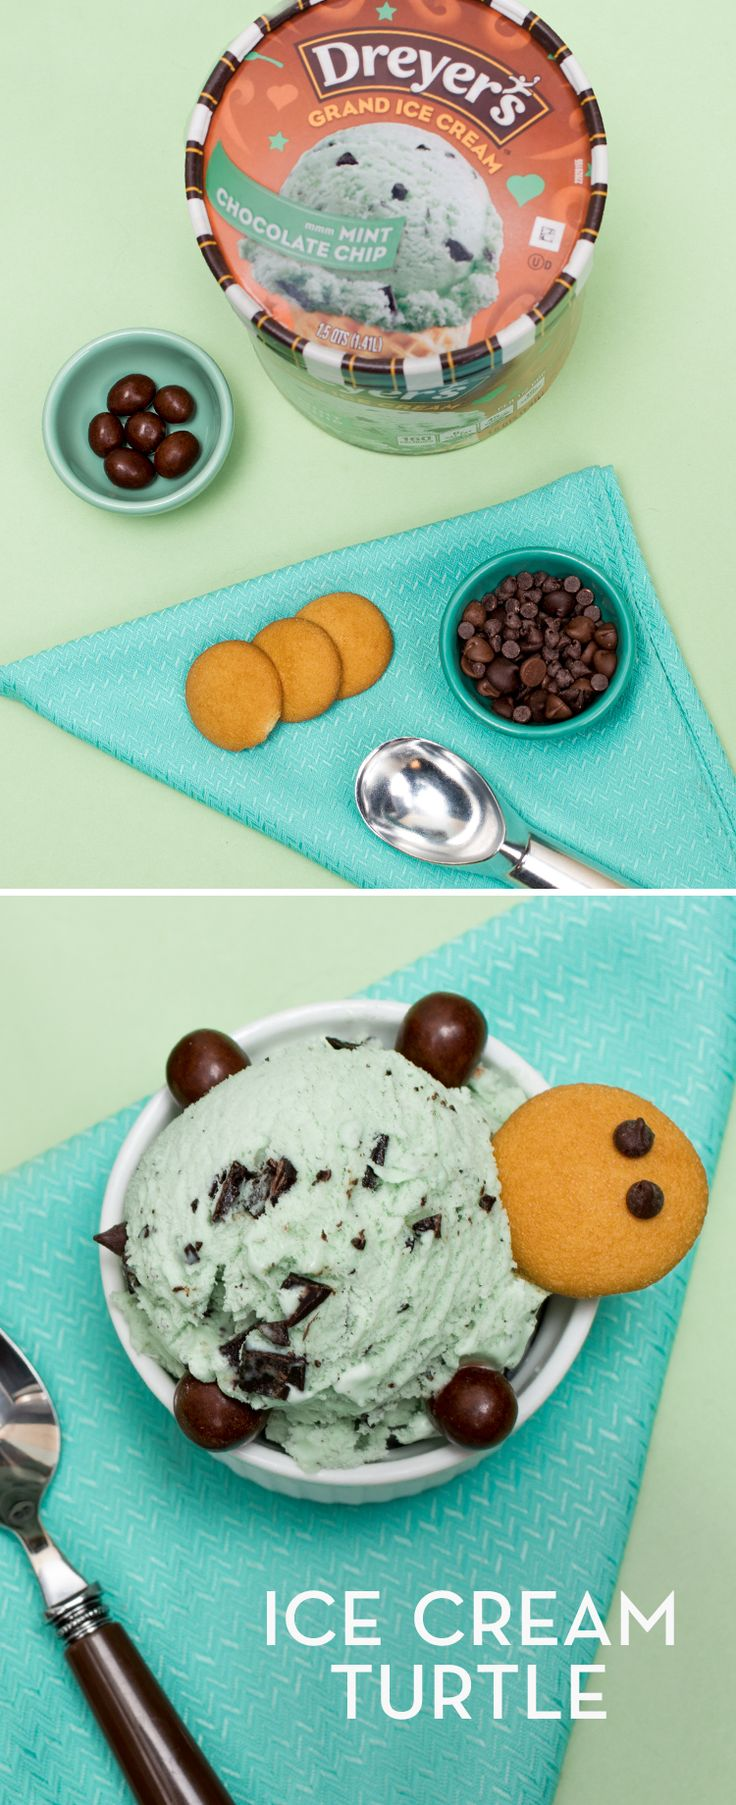 Dreyer's Ice Cream Turtle: This delicious recipe is so simple, you'll wonder if slow and steady really wins the race! Top a scoop of Mint Chocolate Chip ice cream with a large vanilla wafer for his head, four large candy pieces for his legs, a chocolate chip for his tail and two more for his eyes. Turtley awesome, isn't it?